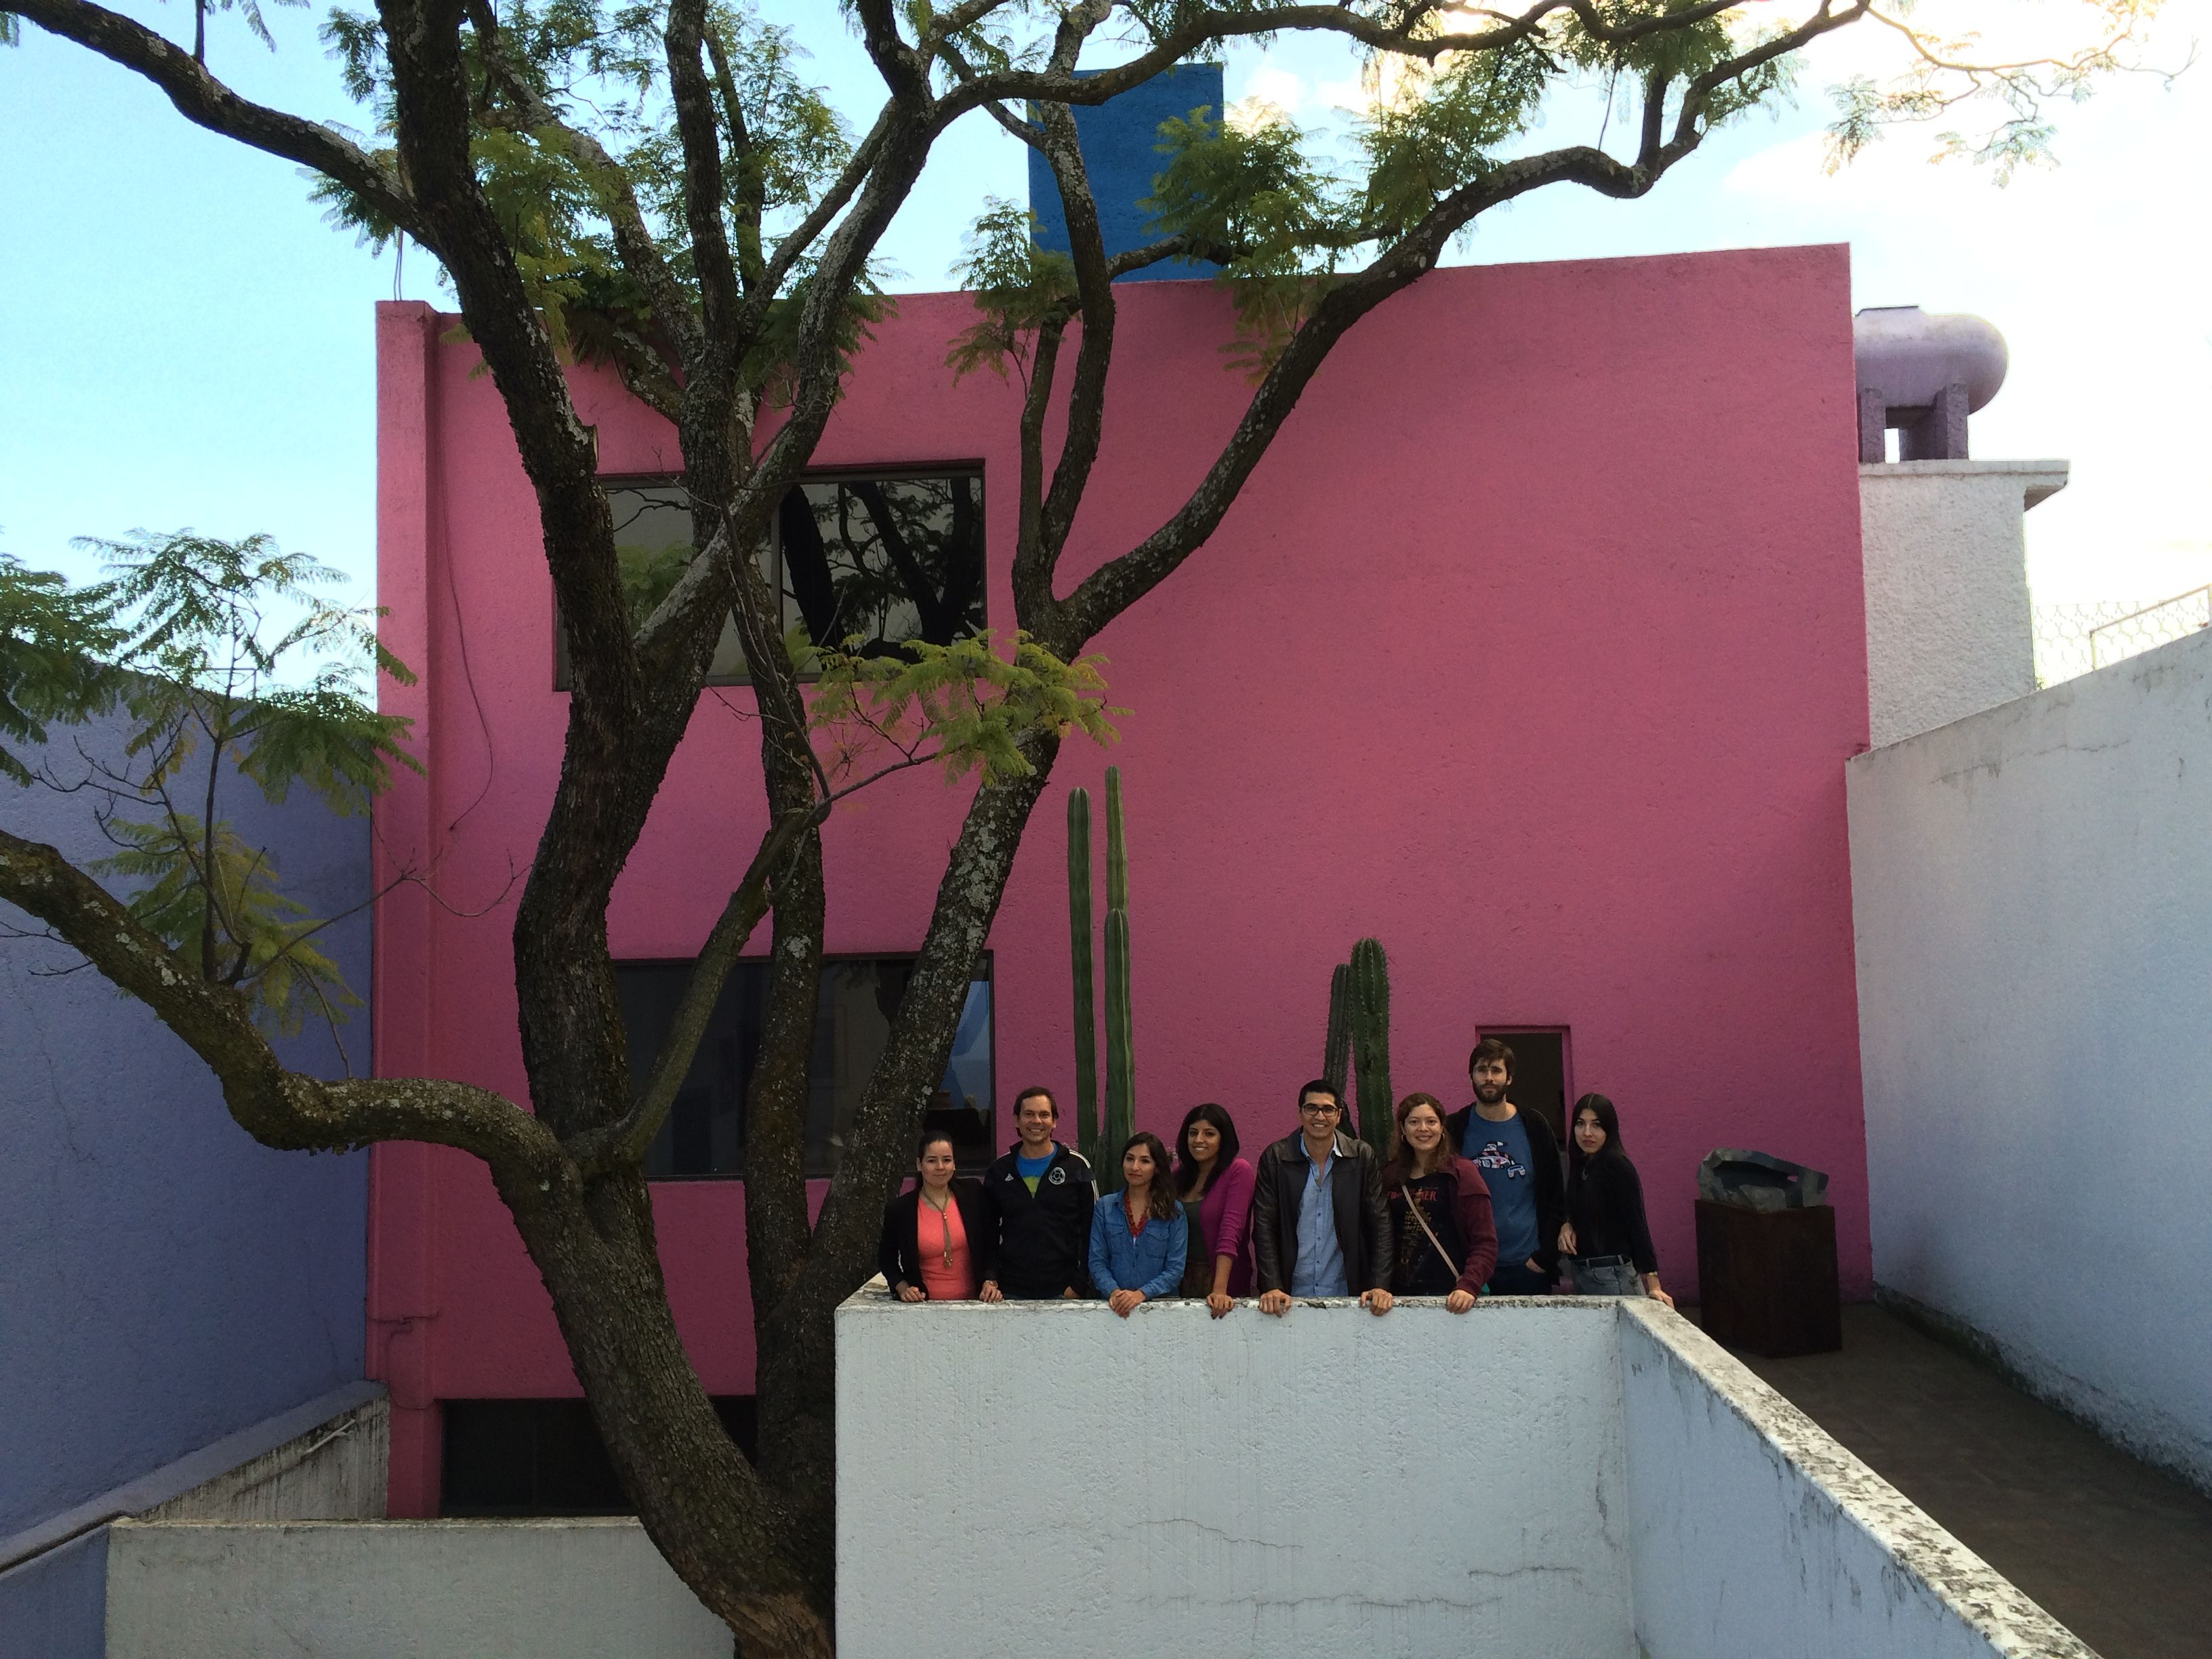 #WareMalcomb #Mexico team visited the Gilardi House designed by architect Luis Barragan. #architecture #design